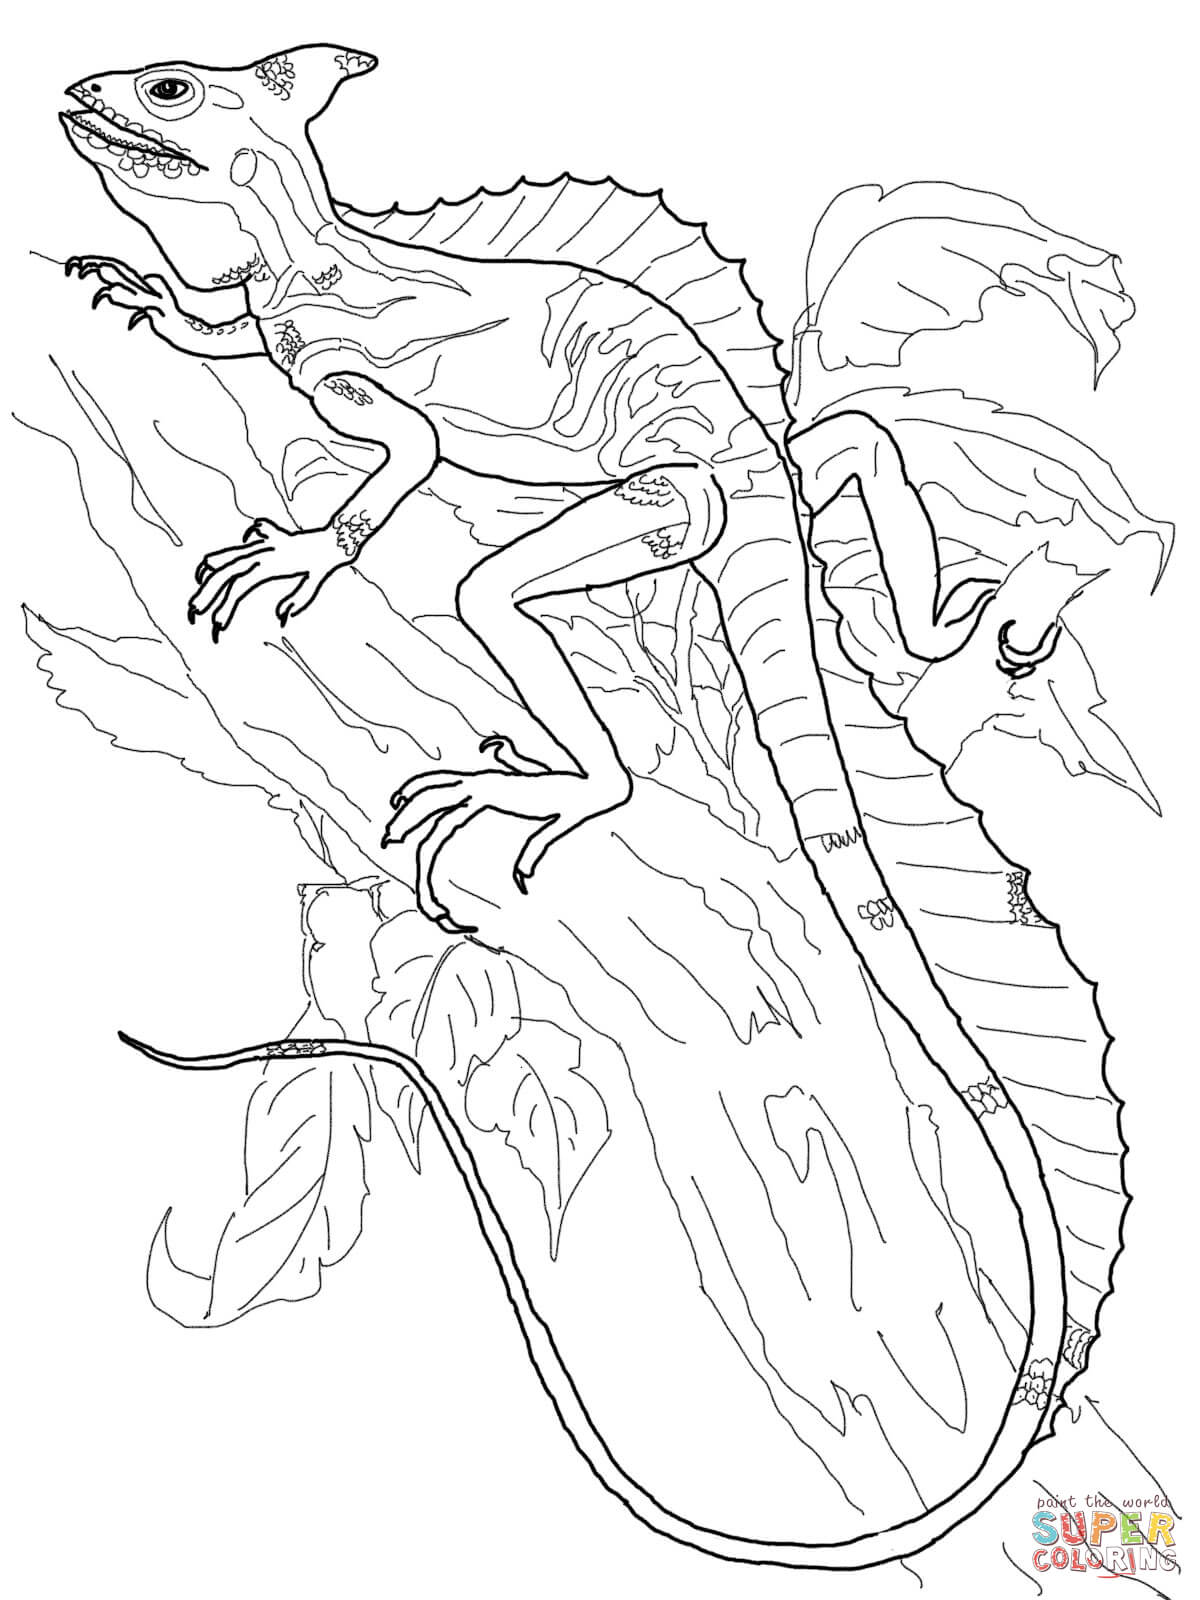 coloring pages of reptiles - monitor lizard coloring pages download and print for free